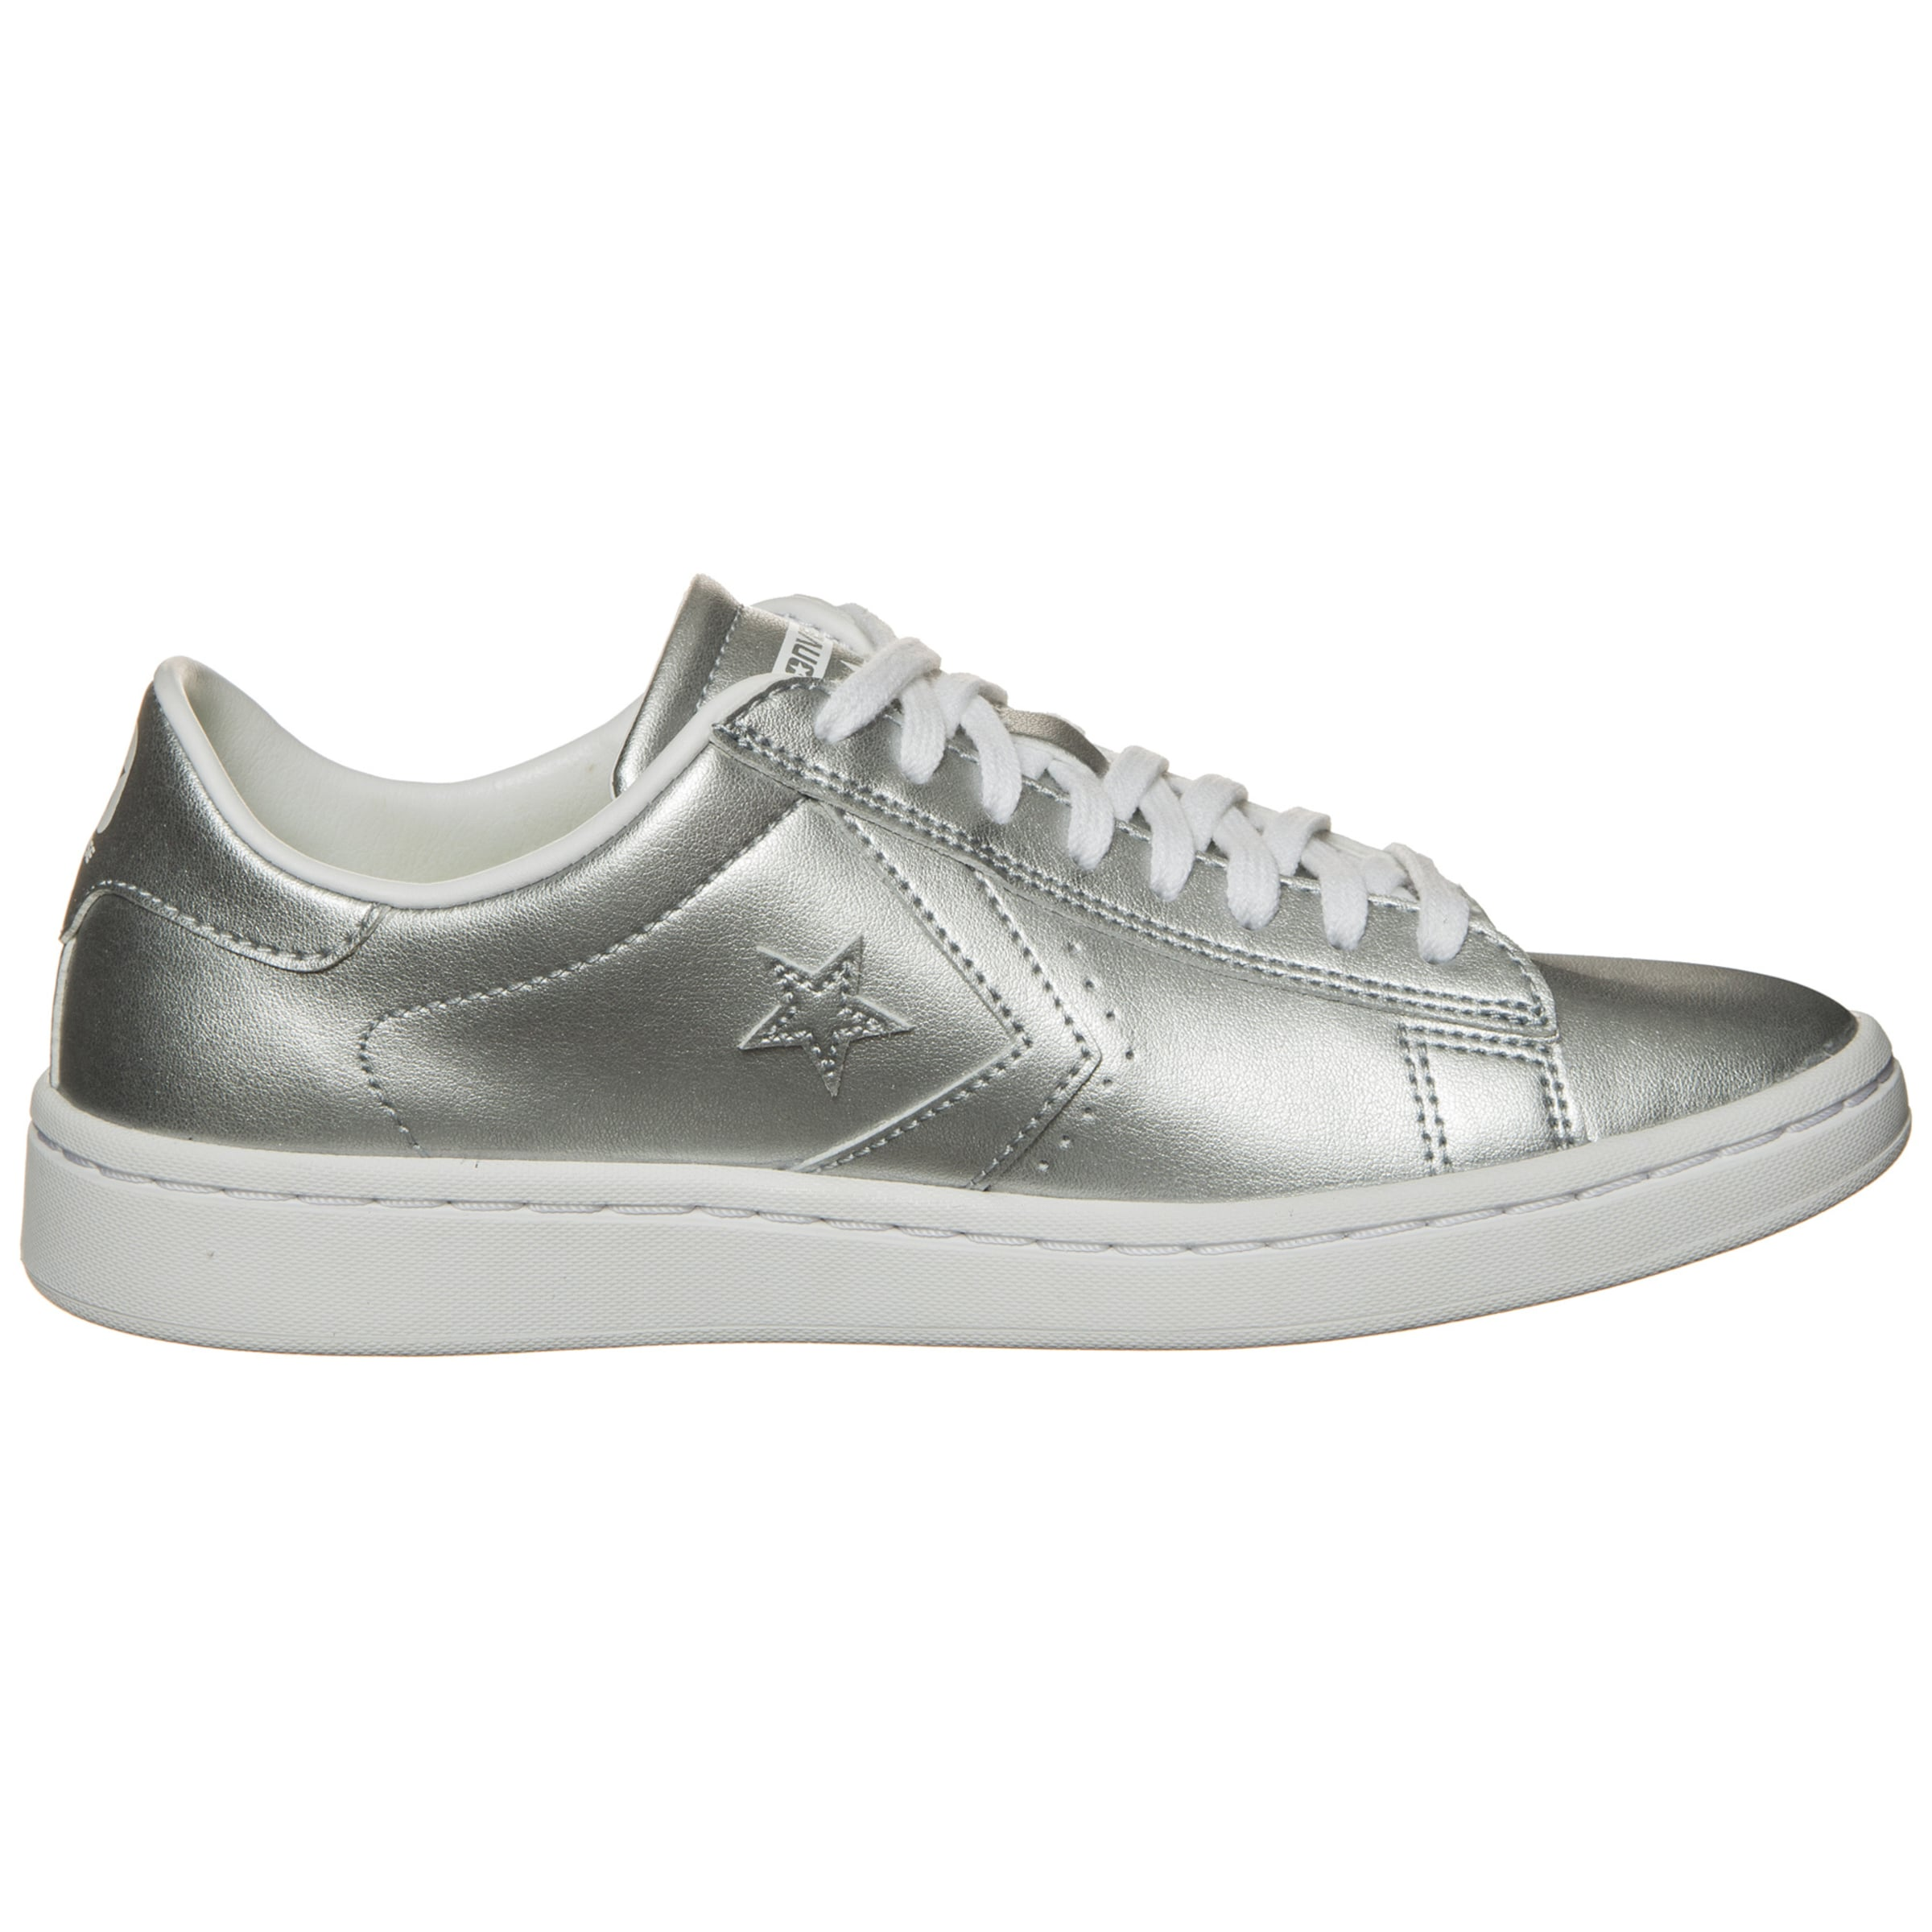 Metallic In Leather Ox' Silber Lp Converse Sneaker 'pro QhrCdts